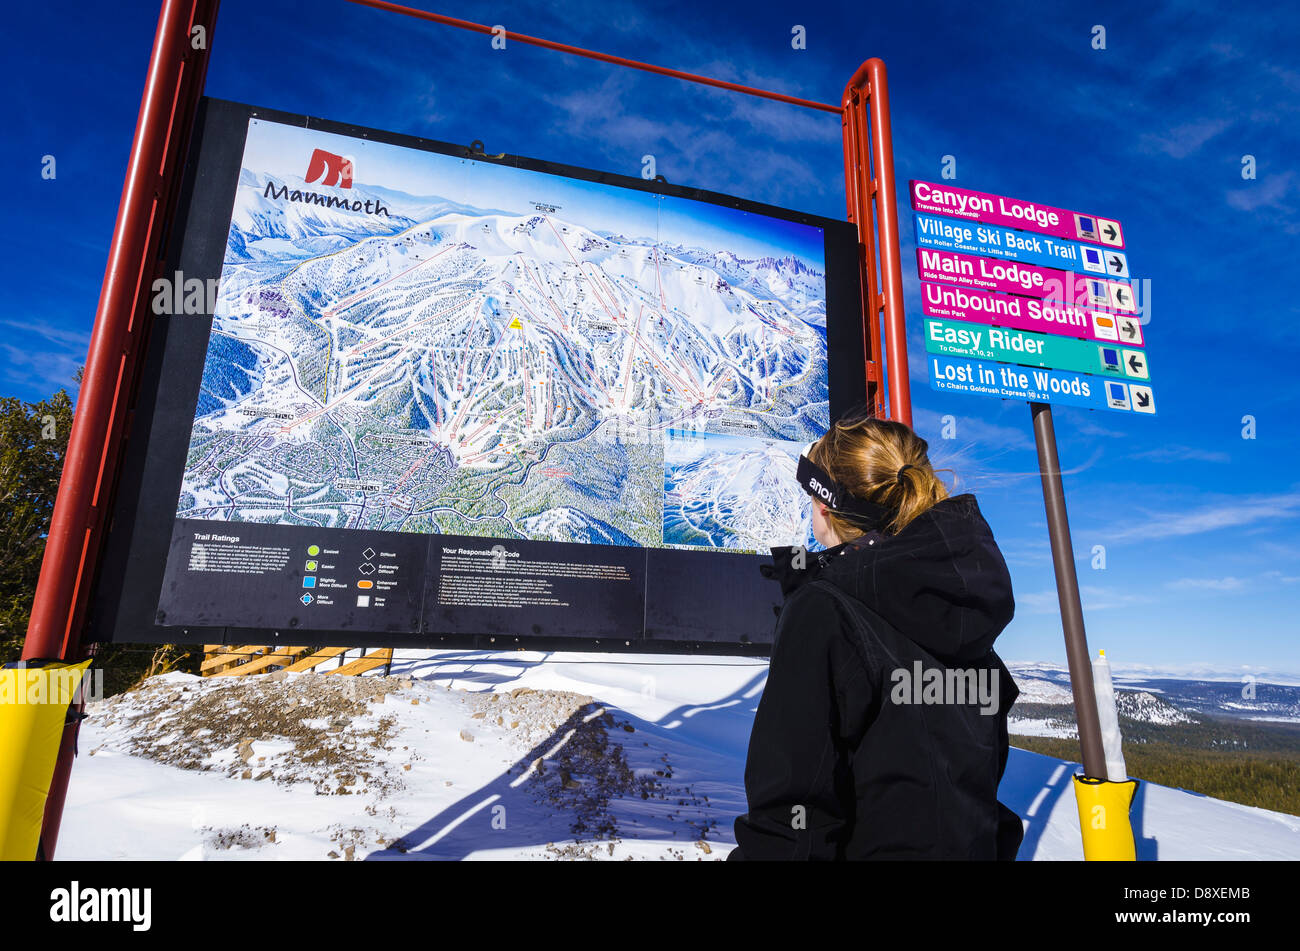 Snow boarder and Trail map, Mammoth Mountain Ski Area ... on mammoth sites in north america maps, mammoth california airport map, mammoth resort map, june mountain trail map,